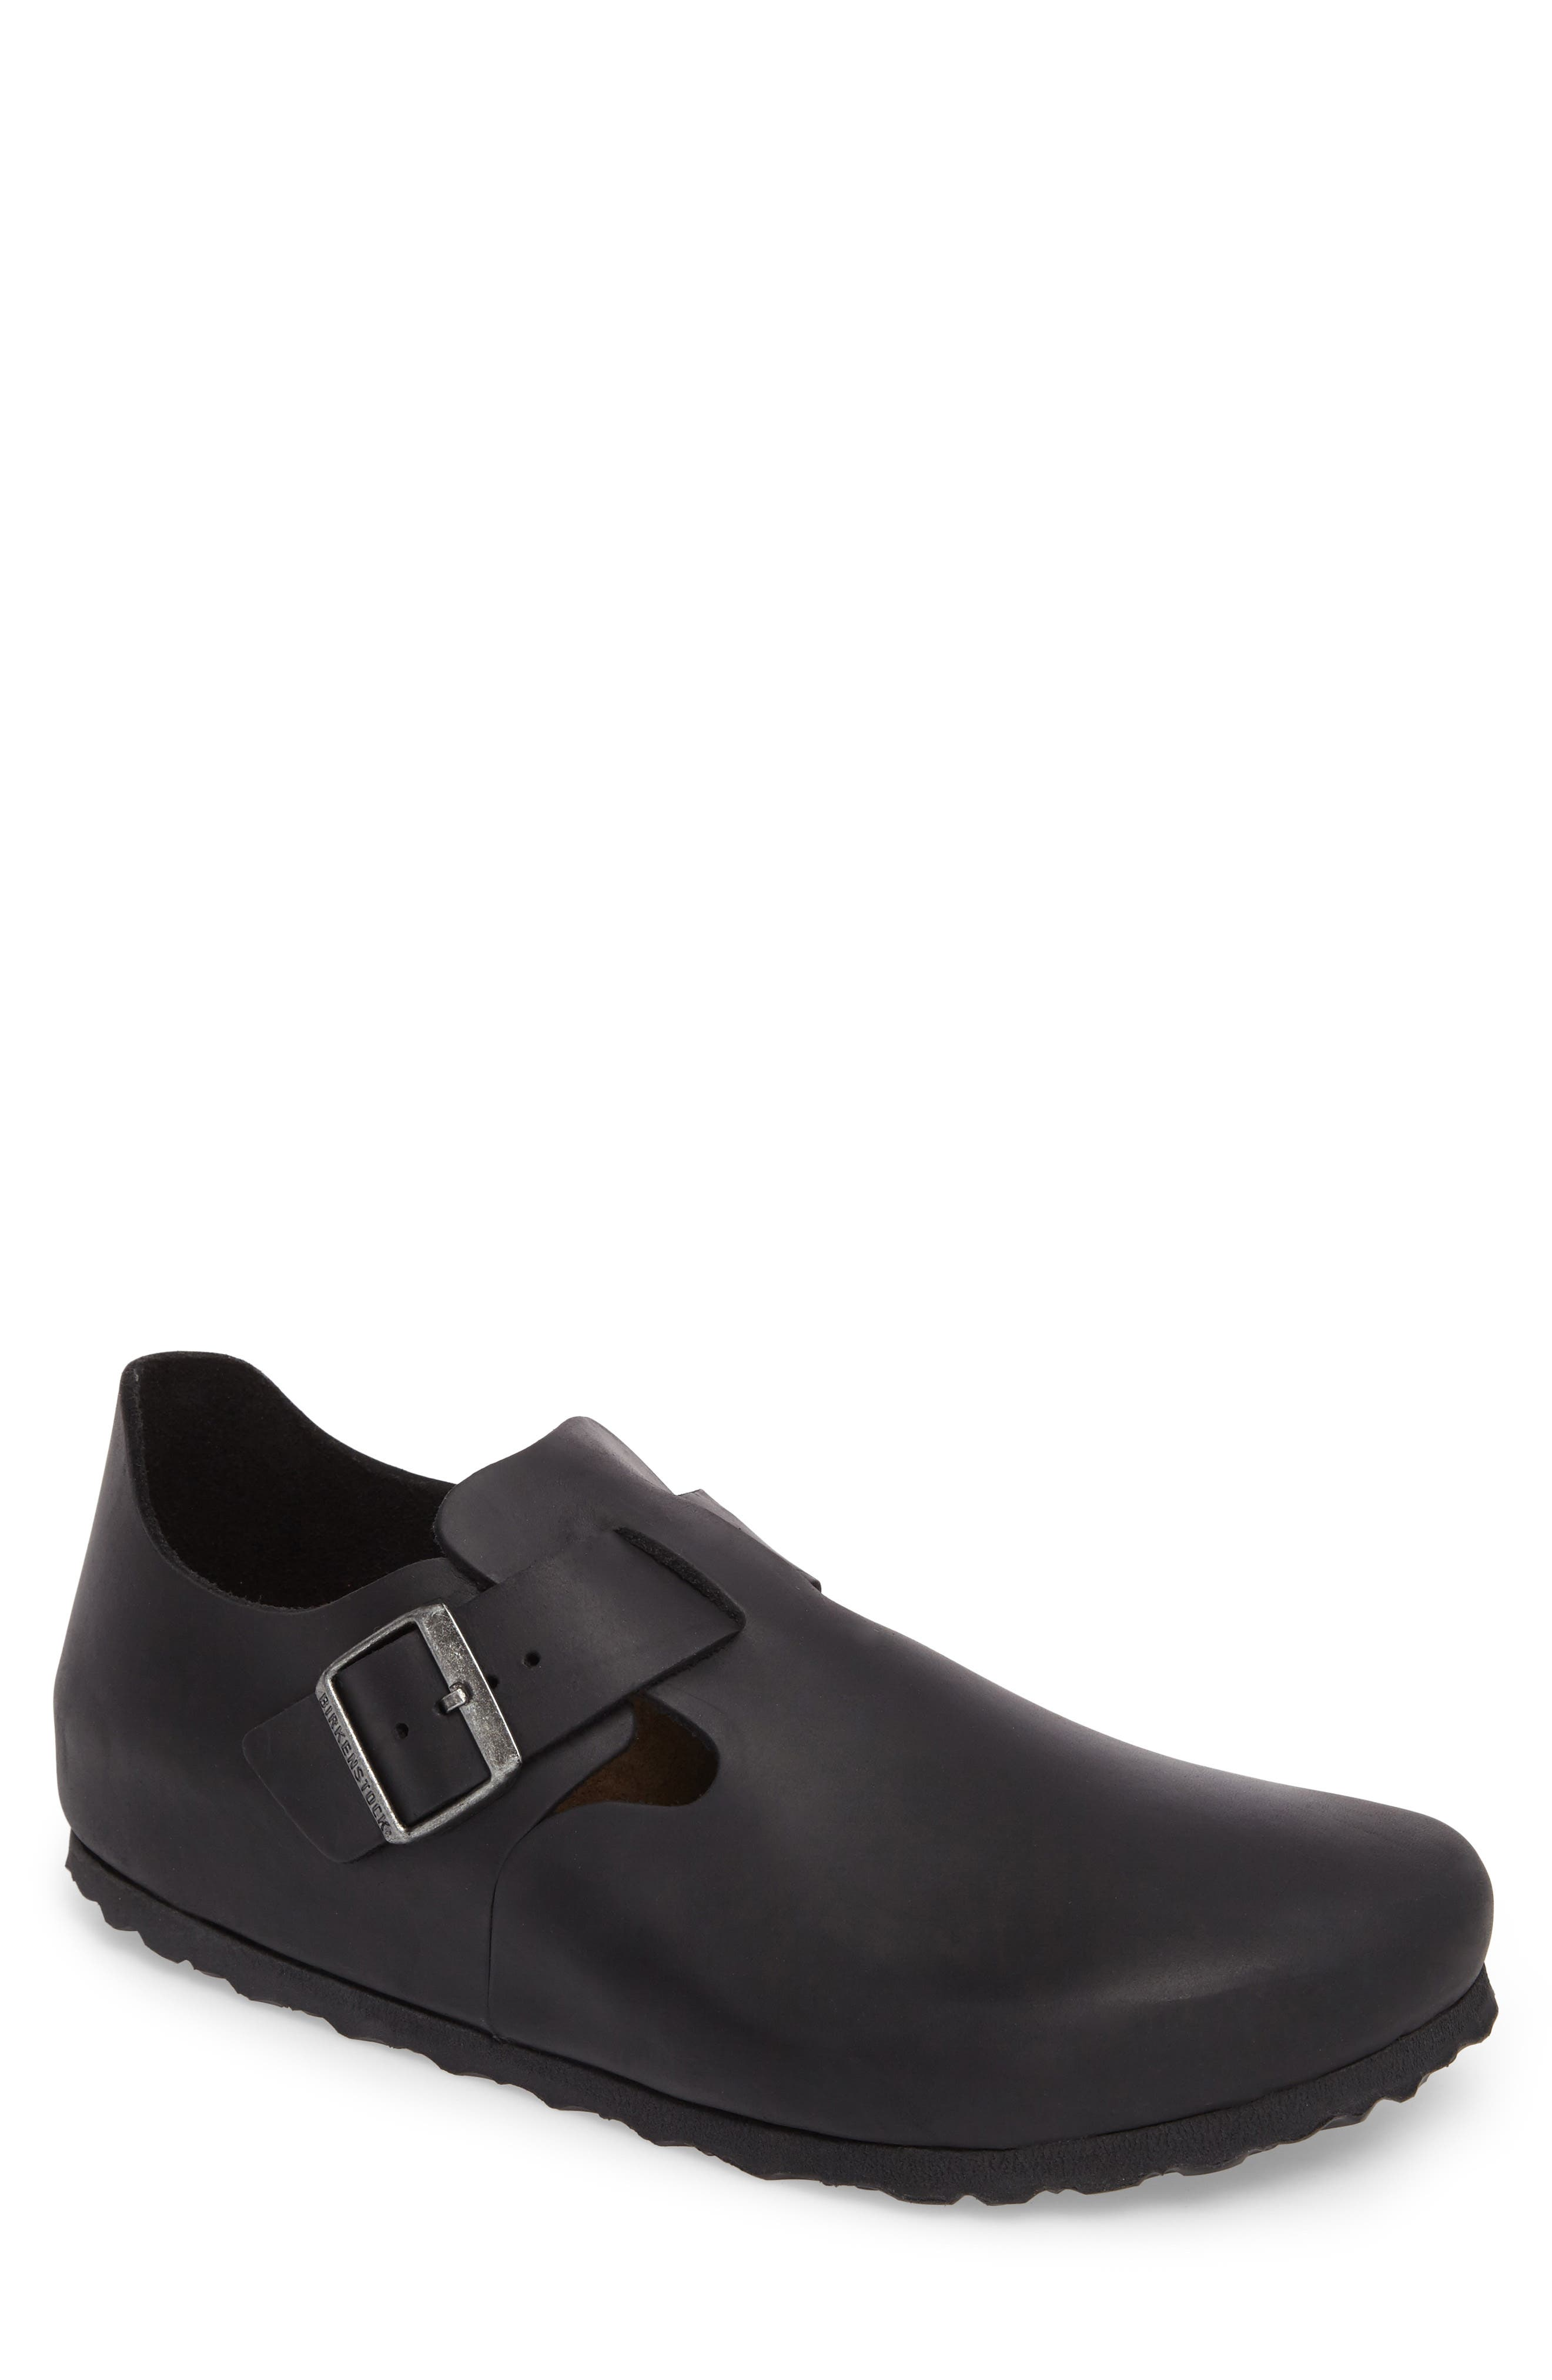 'London' Slip-On,                             Main thumbnail 1, color,                             Black Leather